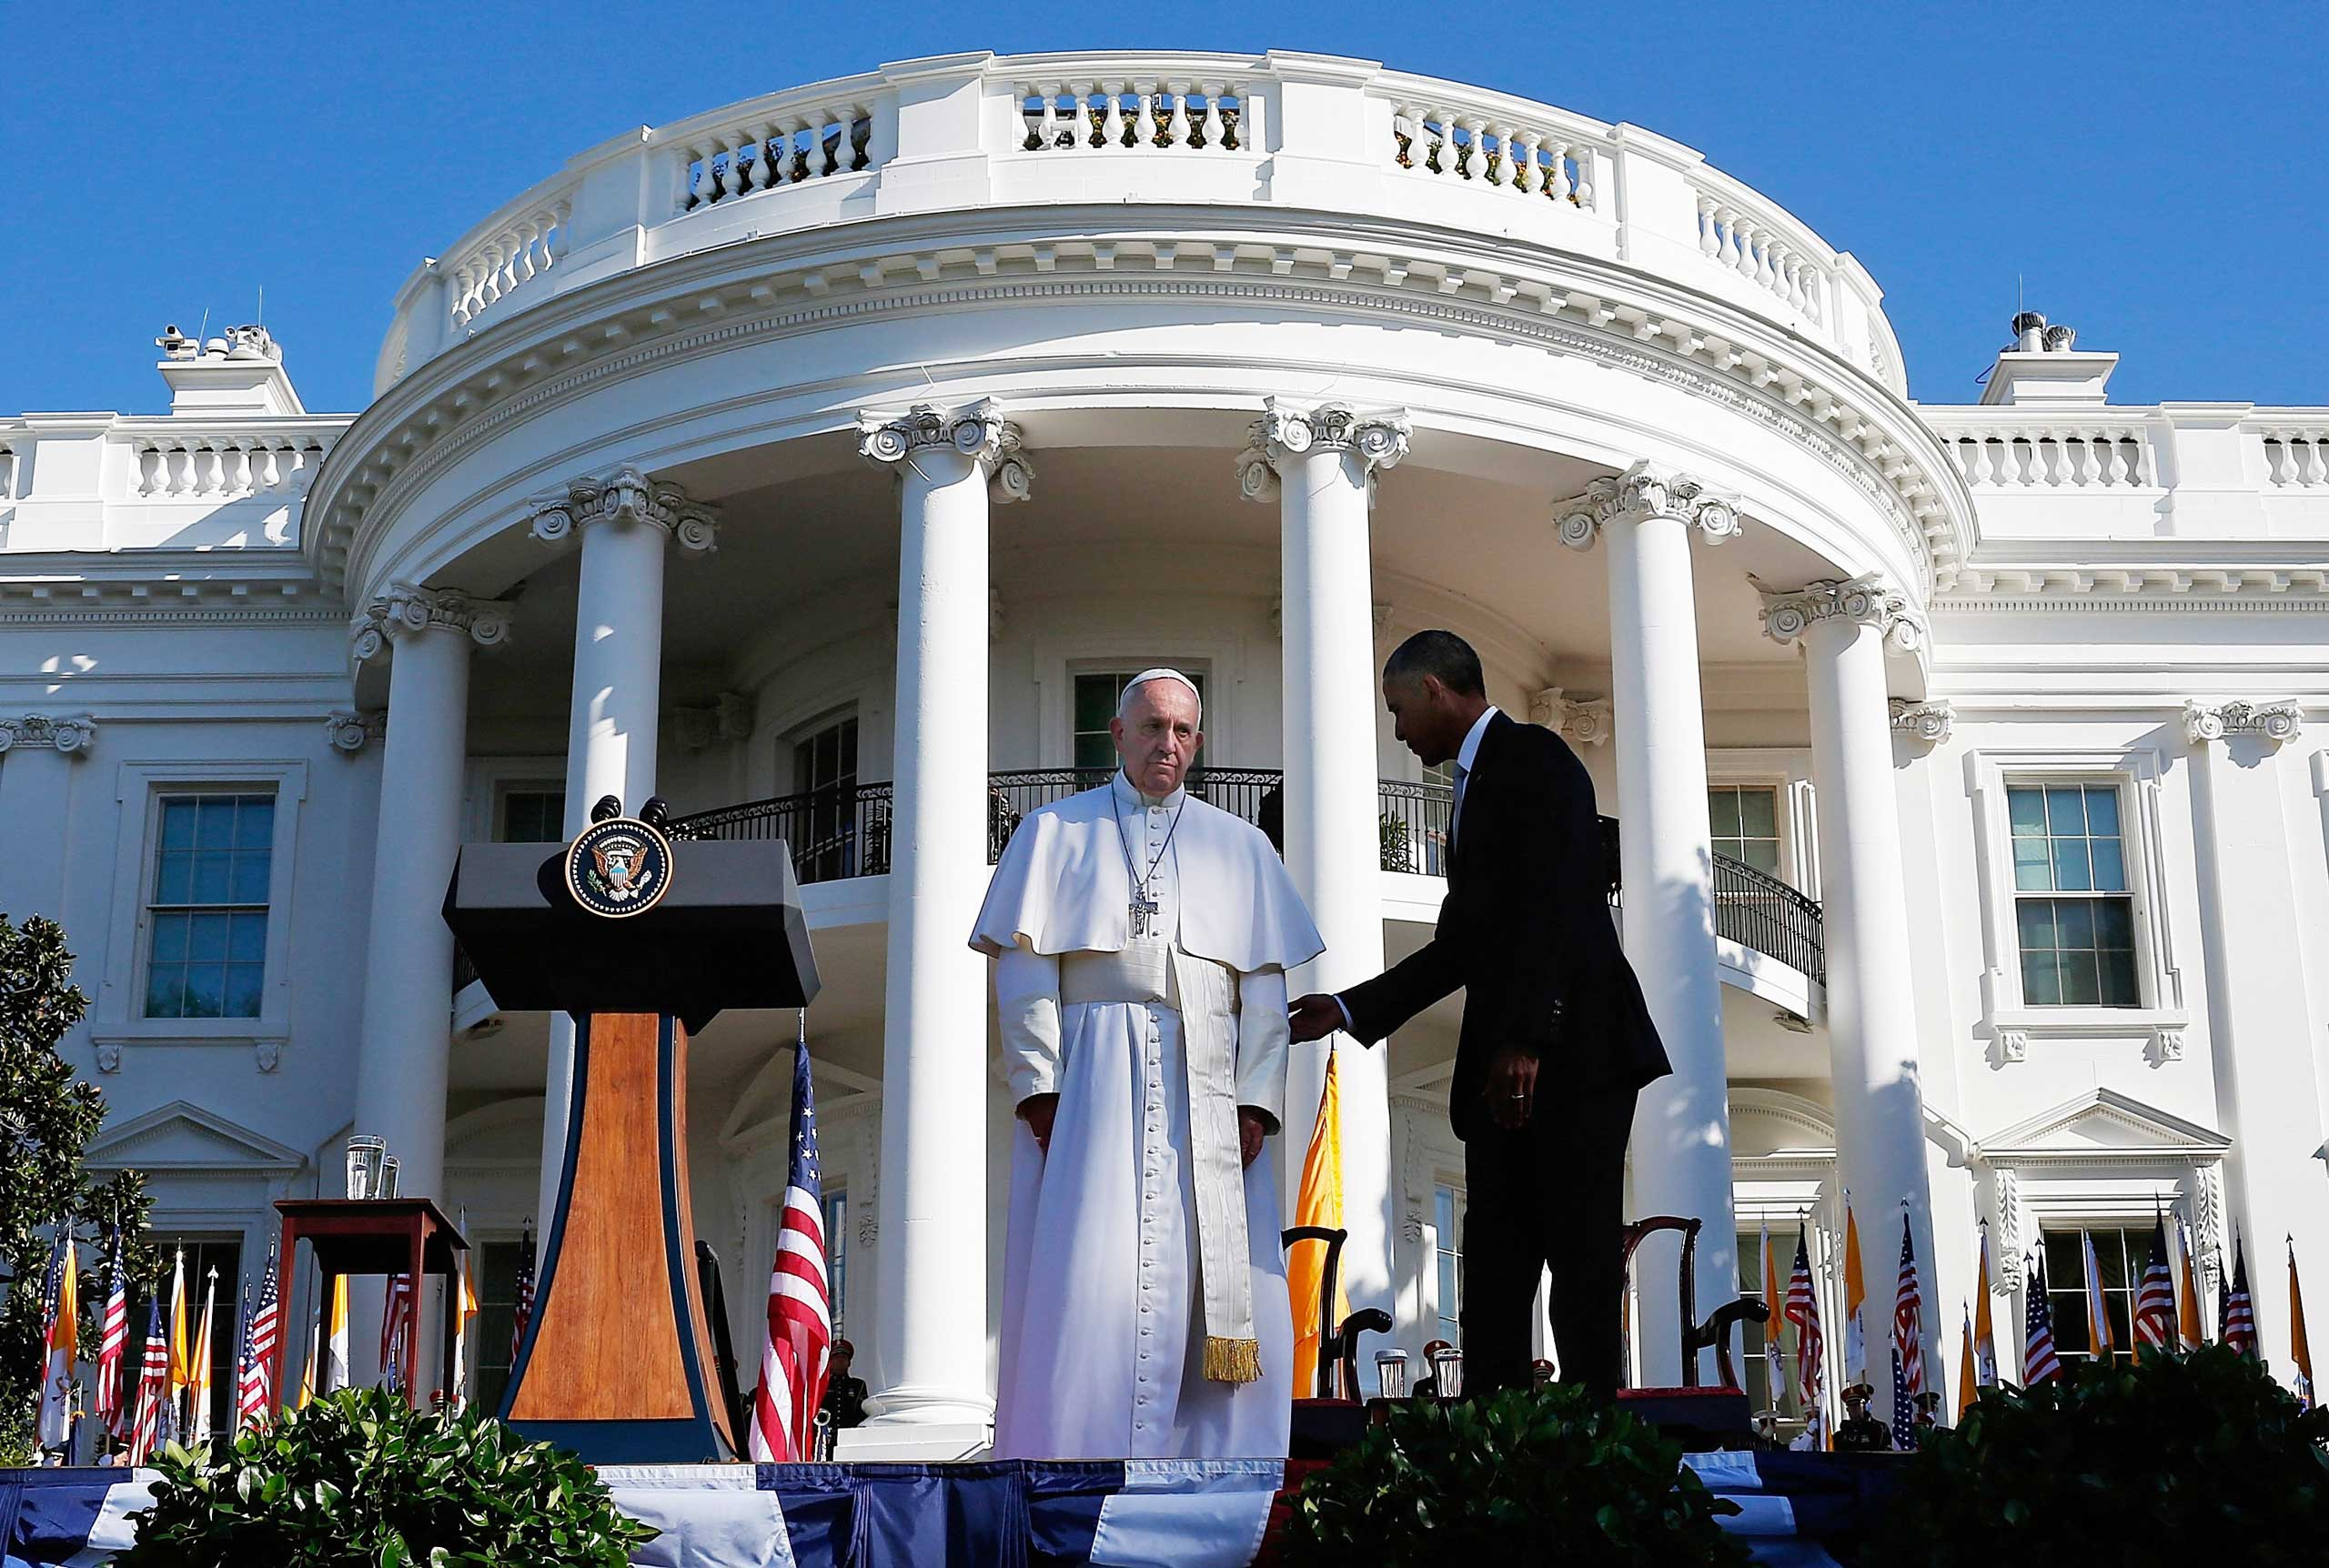 President Barack Obama welcomes Pope Francis during an arrival ceremony at the White House in Washington, on Sept. 23, 2015.